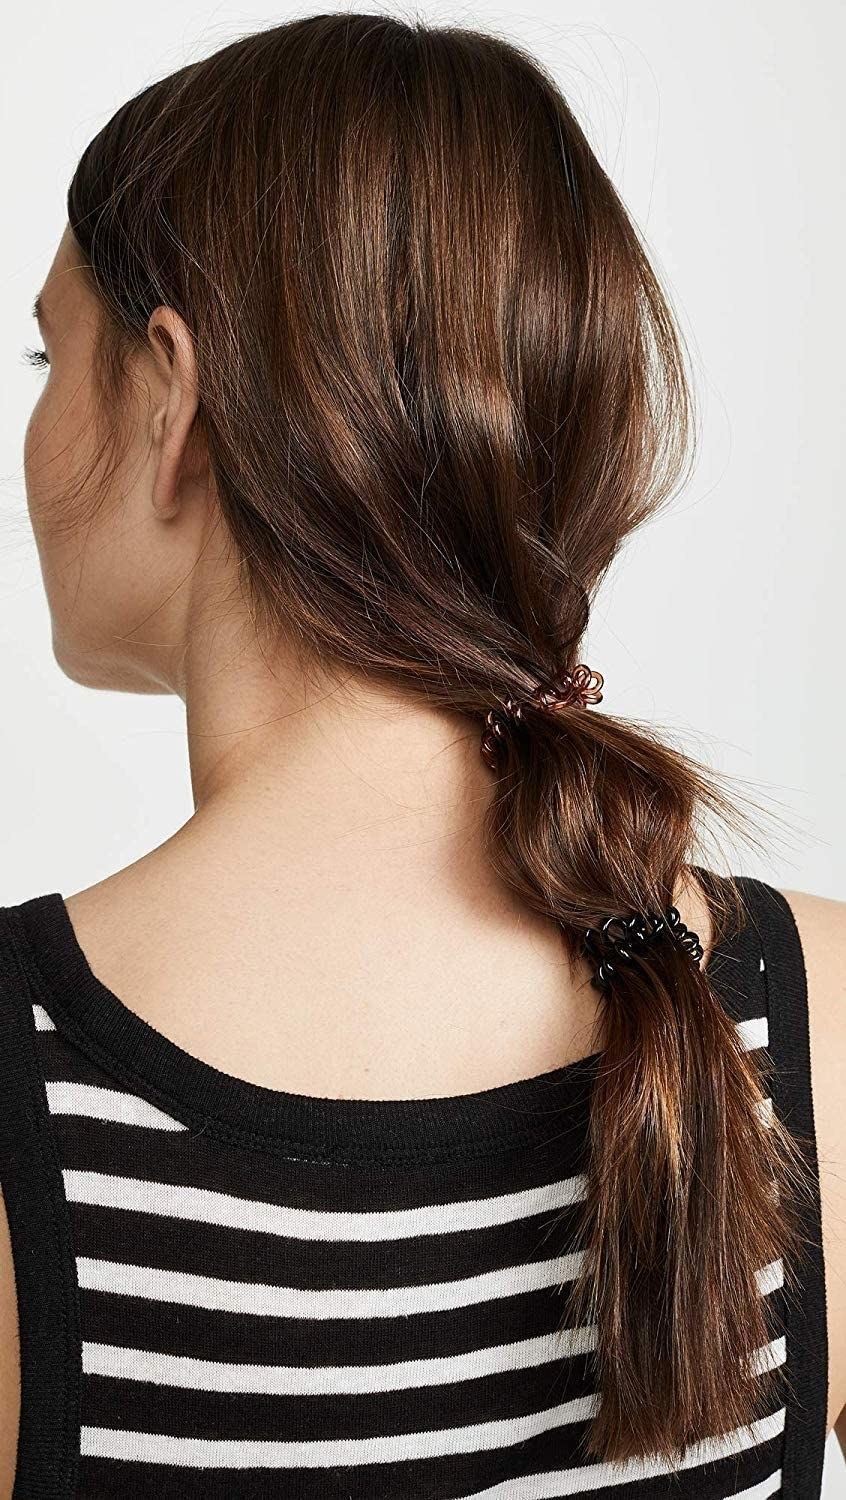 A person with their long hair in a ponytail using coiled hair ties